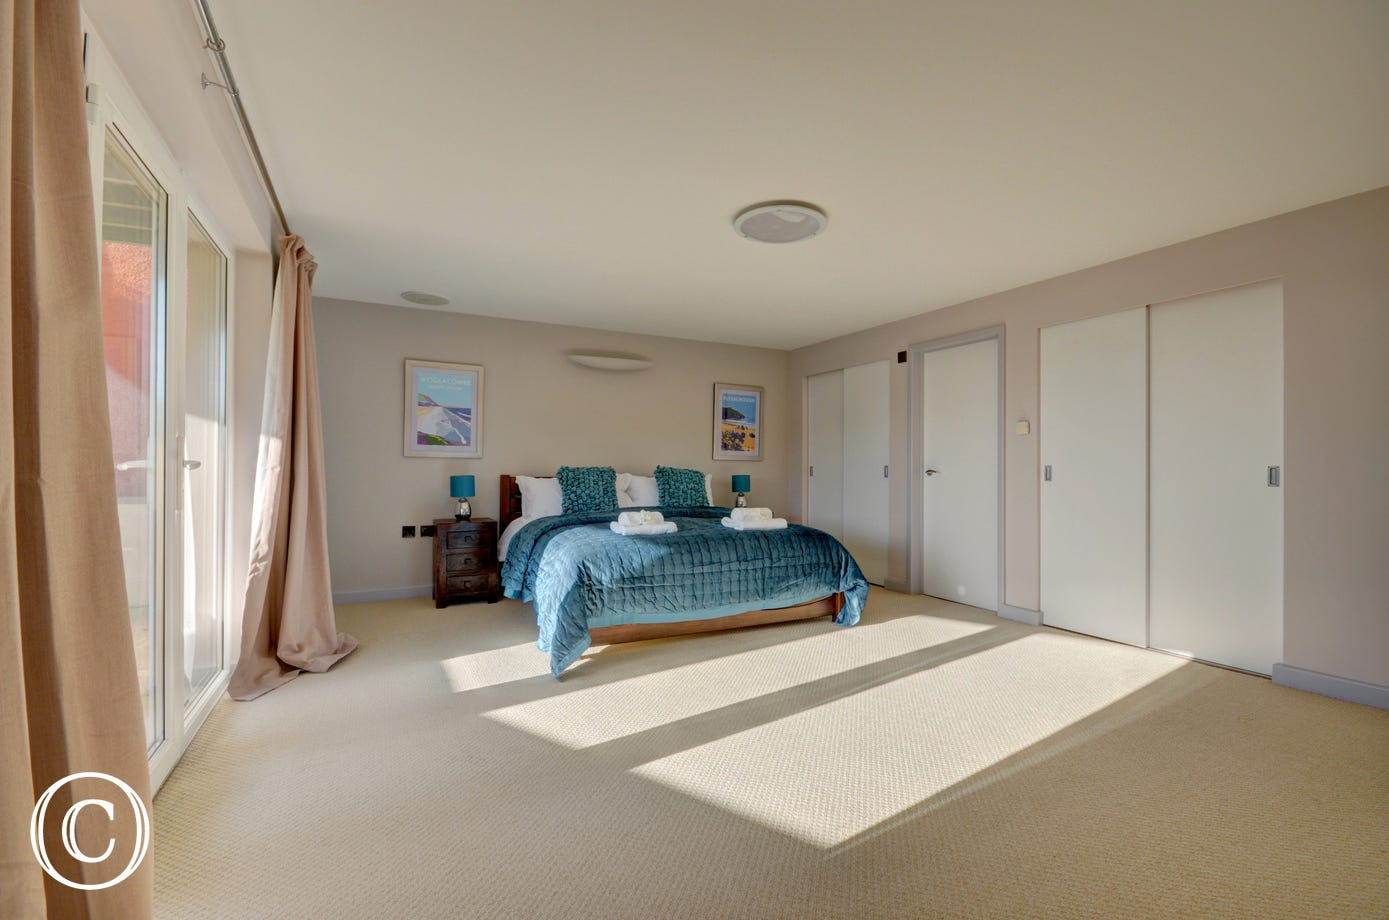 Vast master bedroom with ensuite bathroom